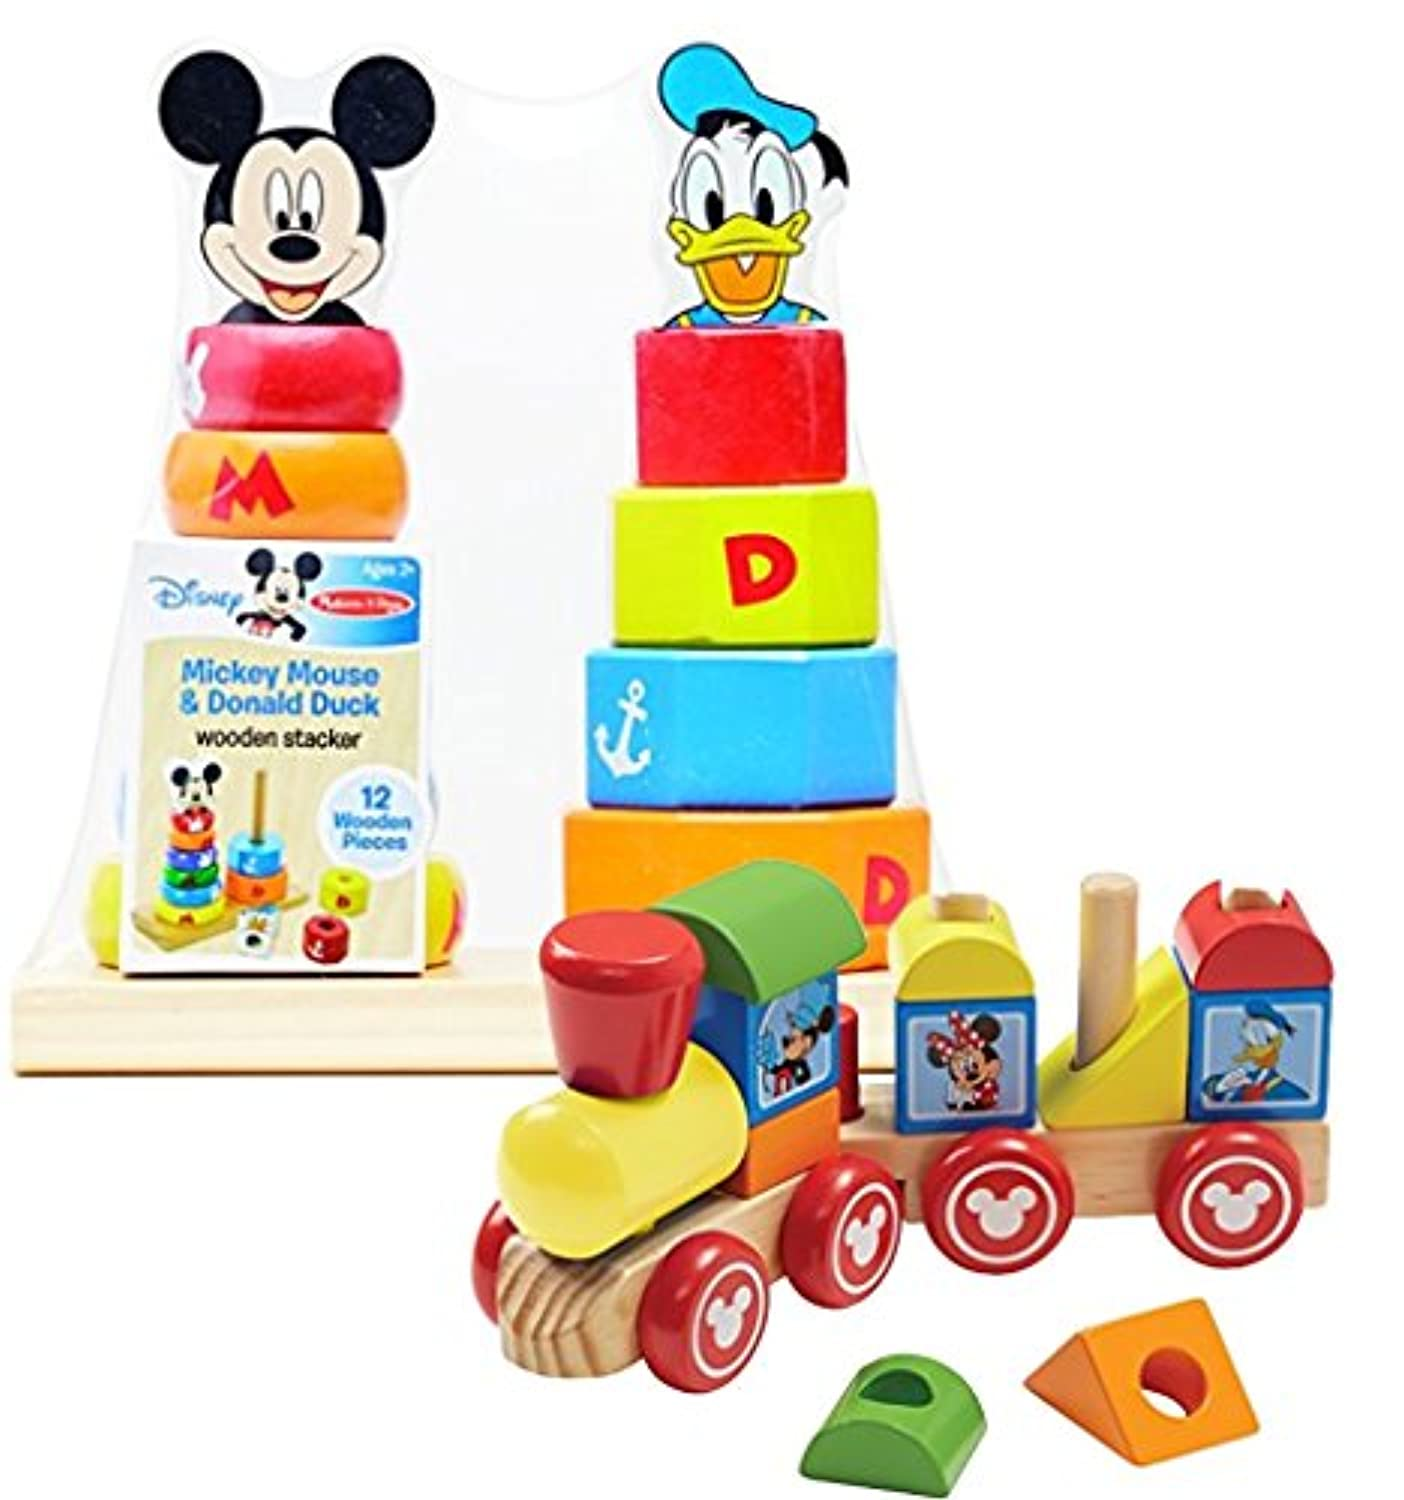 バンドルIncludes 2アイテム – Melissa & Dougディズニーミッキーマウスand Friends Wooden Stacking Train ( 14個)とMelissa & Doug Disney Baby Mickey Mouse and Donald Duck木製Stackerおもちゃ( 12個)